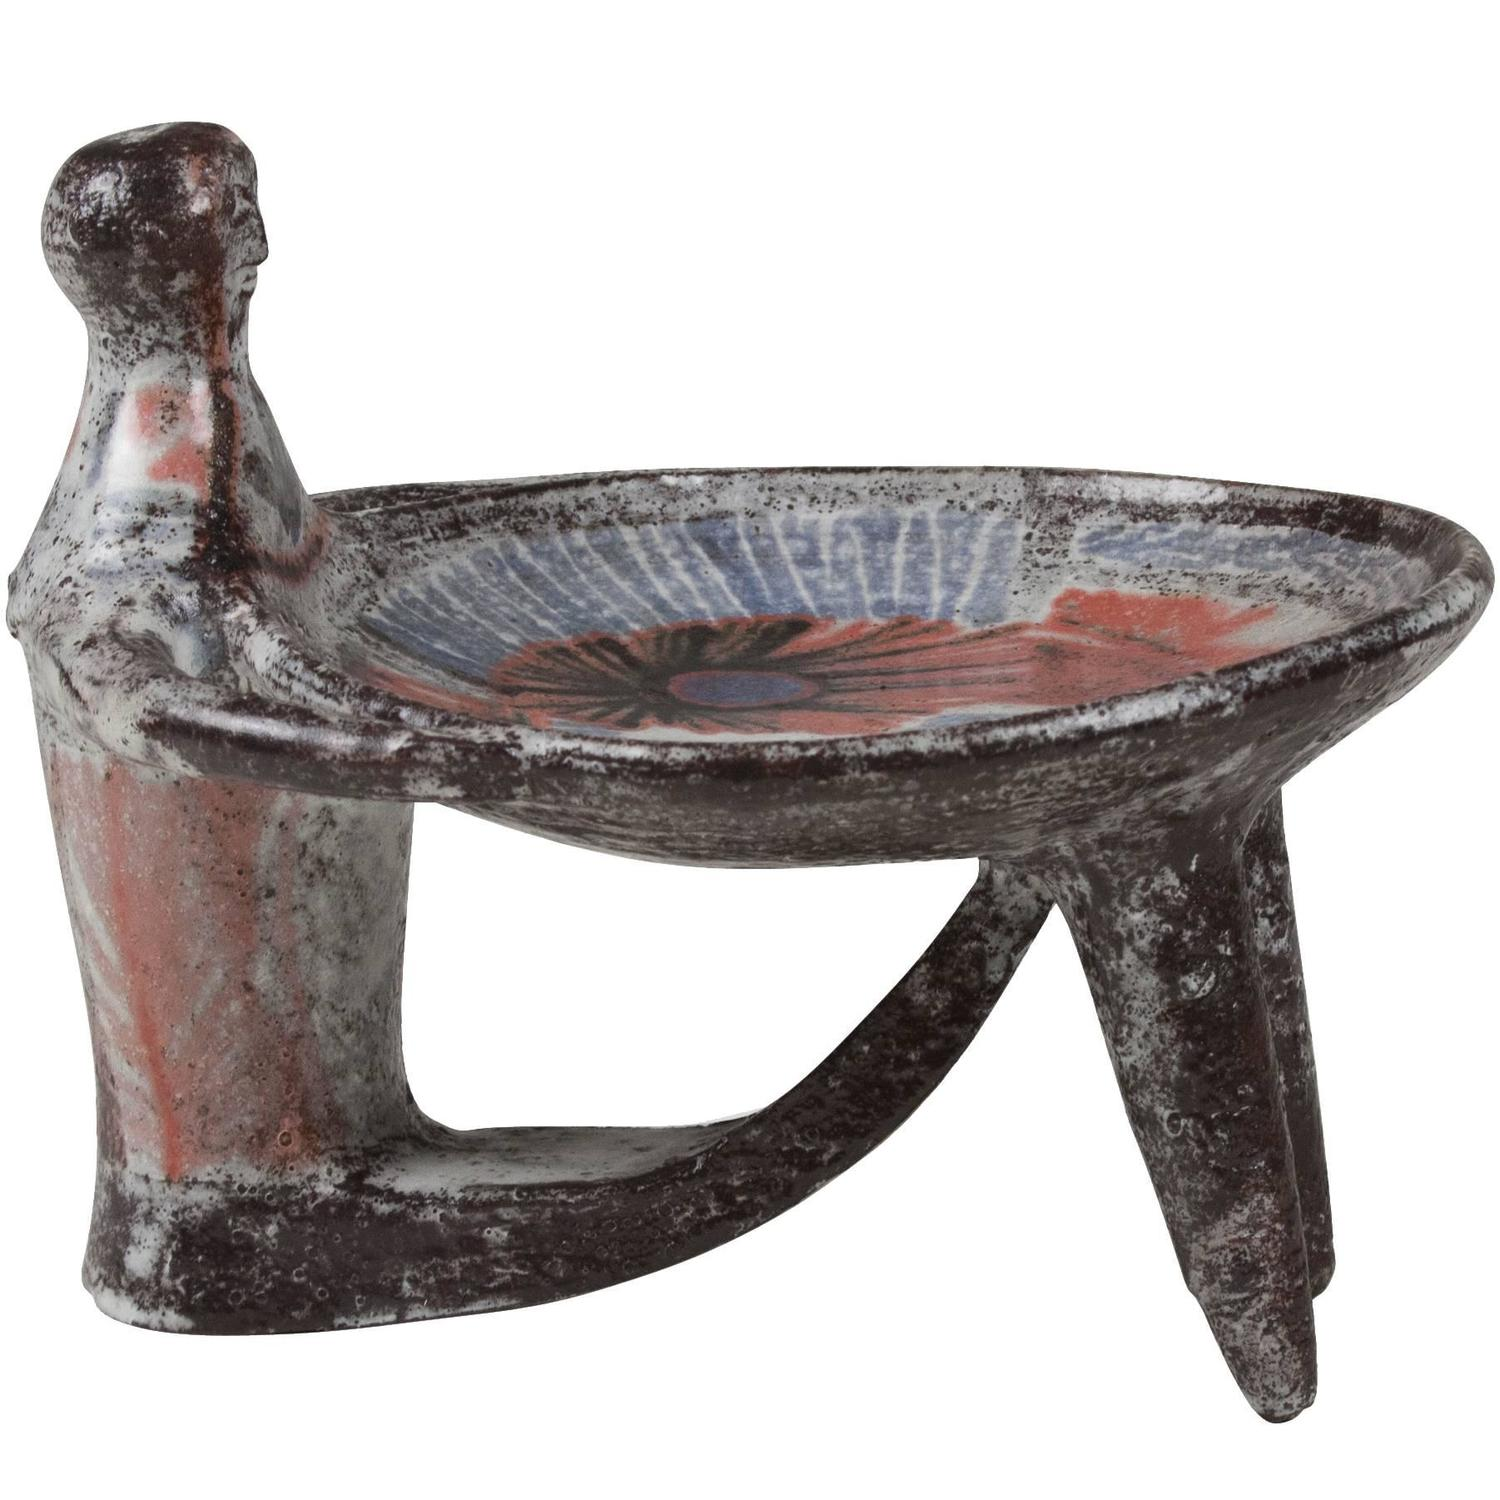 Dish Chair Figural Ceramic Dish By Jean Derval For Sale At 1stdibs